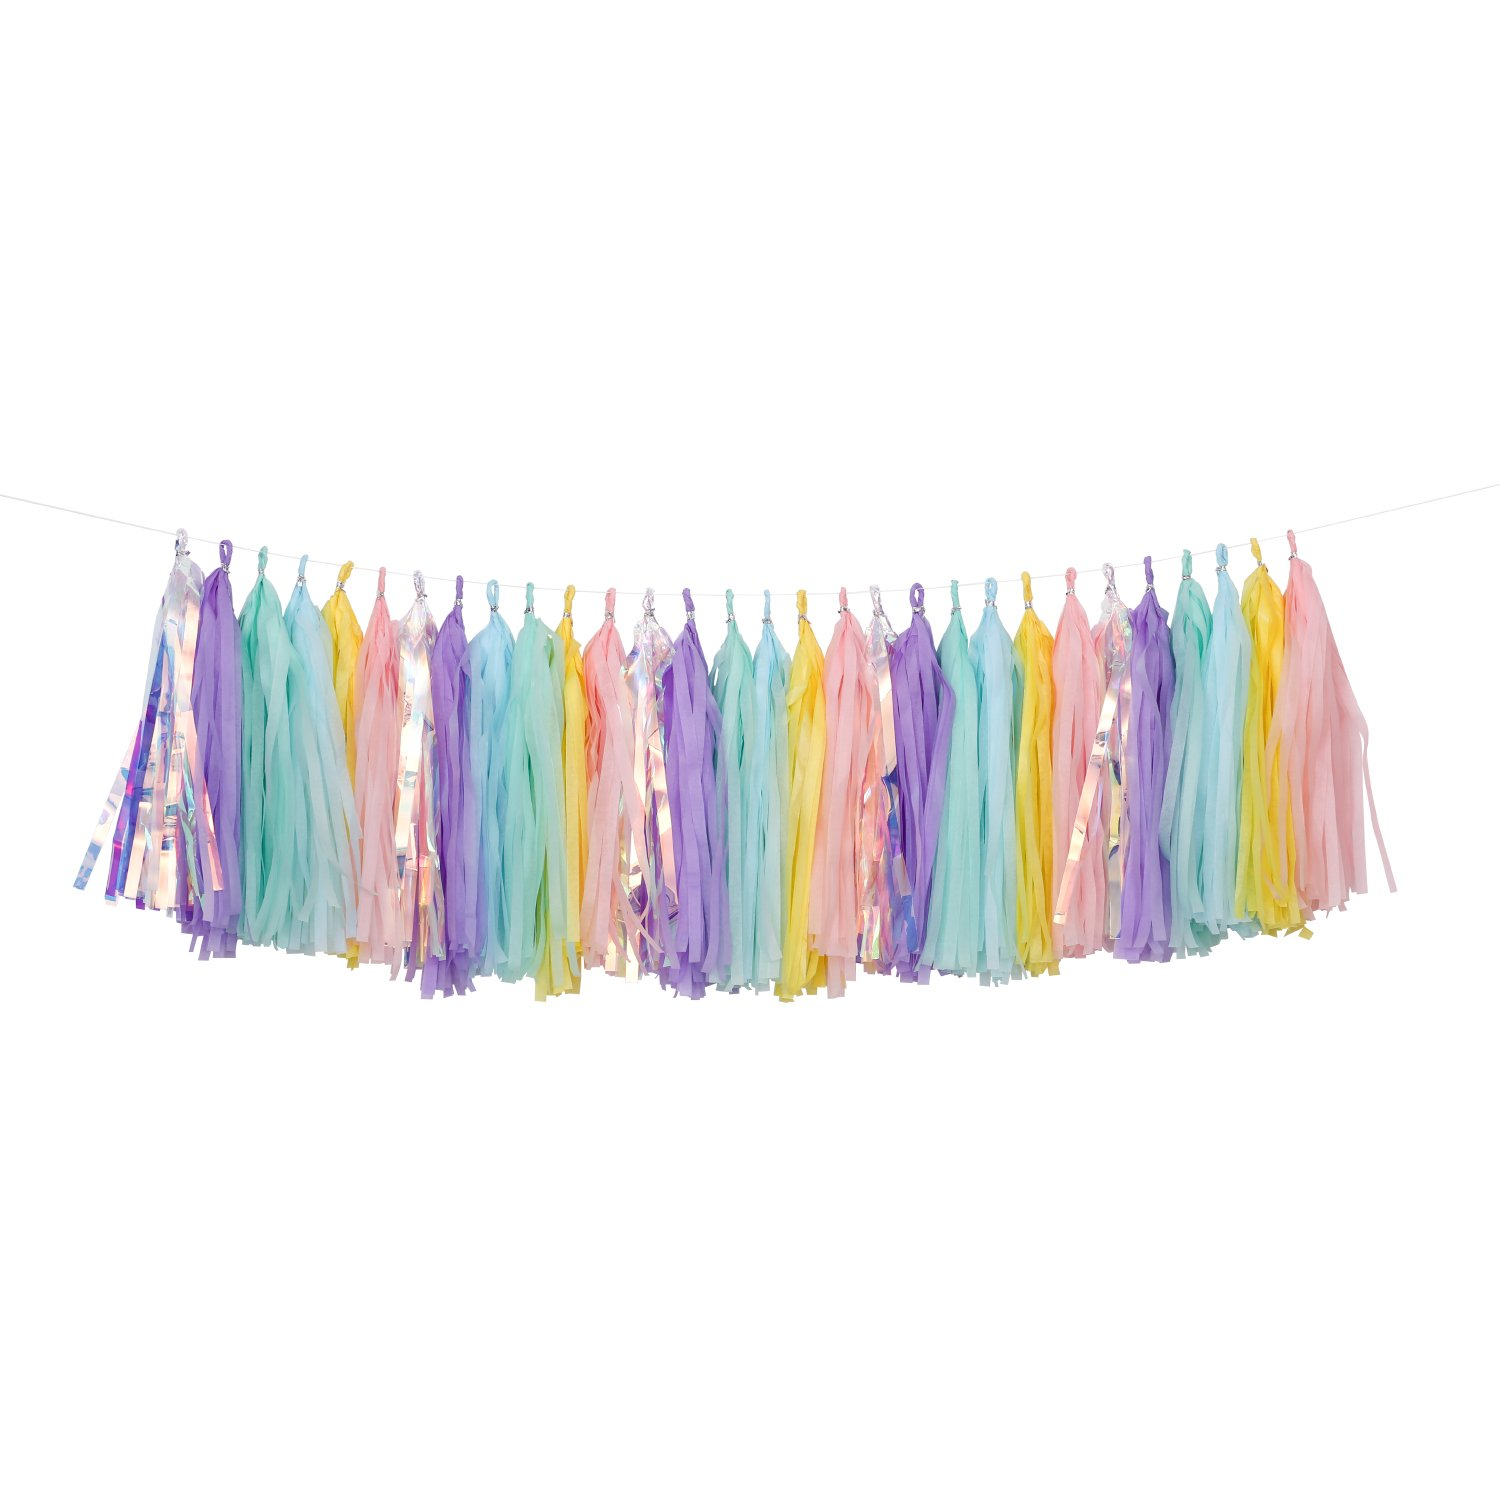 Fonder Mols 30pcs Rainbow Unicorn Tissue Tassel Garland DIY Kit Soft Pink Pastel Ombre Tissue Tassel Banner Modern Girls Room Birthday Party Wedding Shower Nursery Decor A29 4336867224